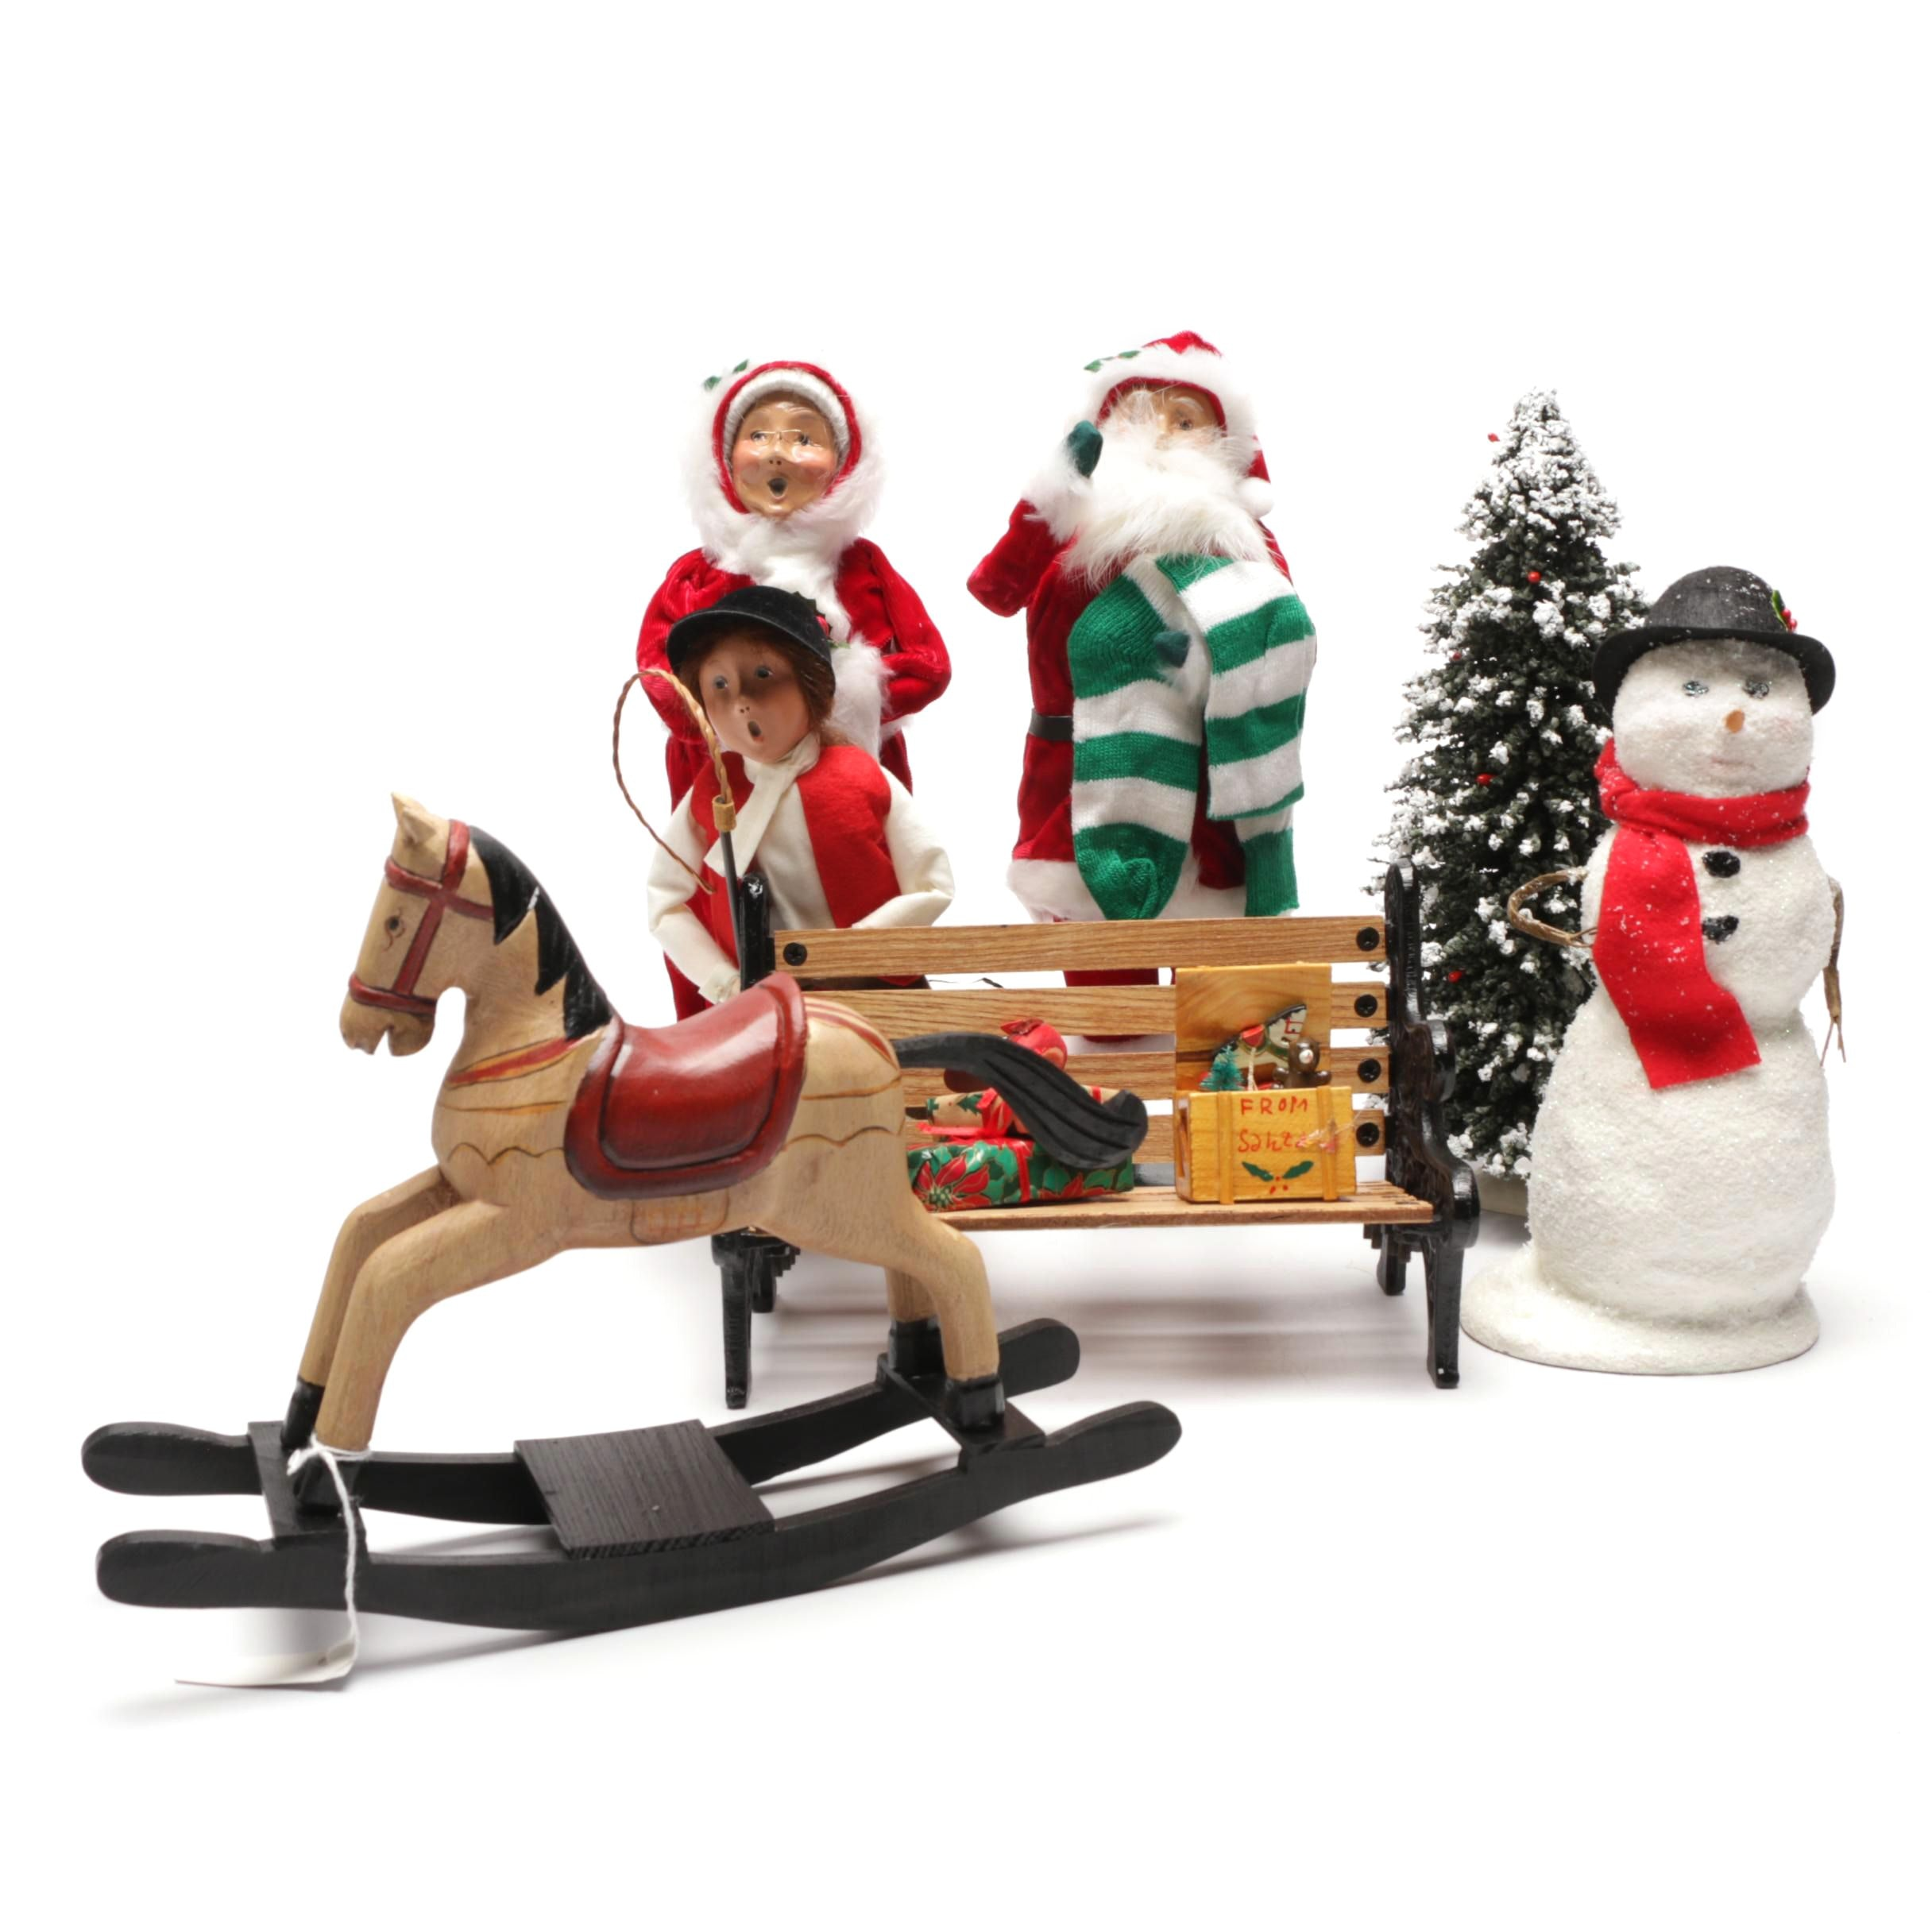 Contemporary Byer's Choice Christmas Figurines